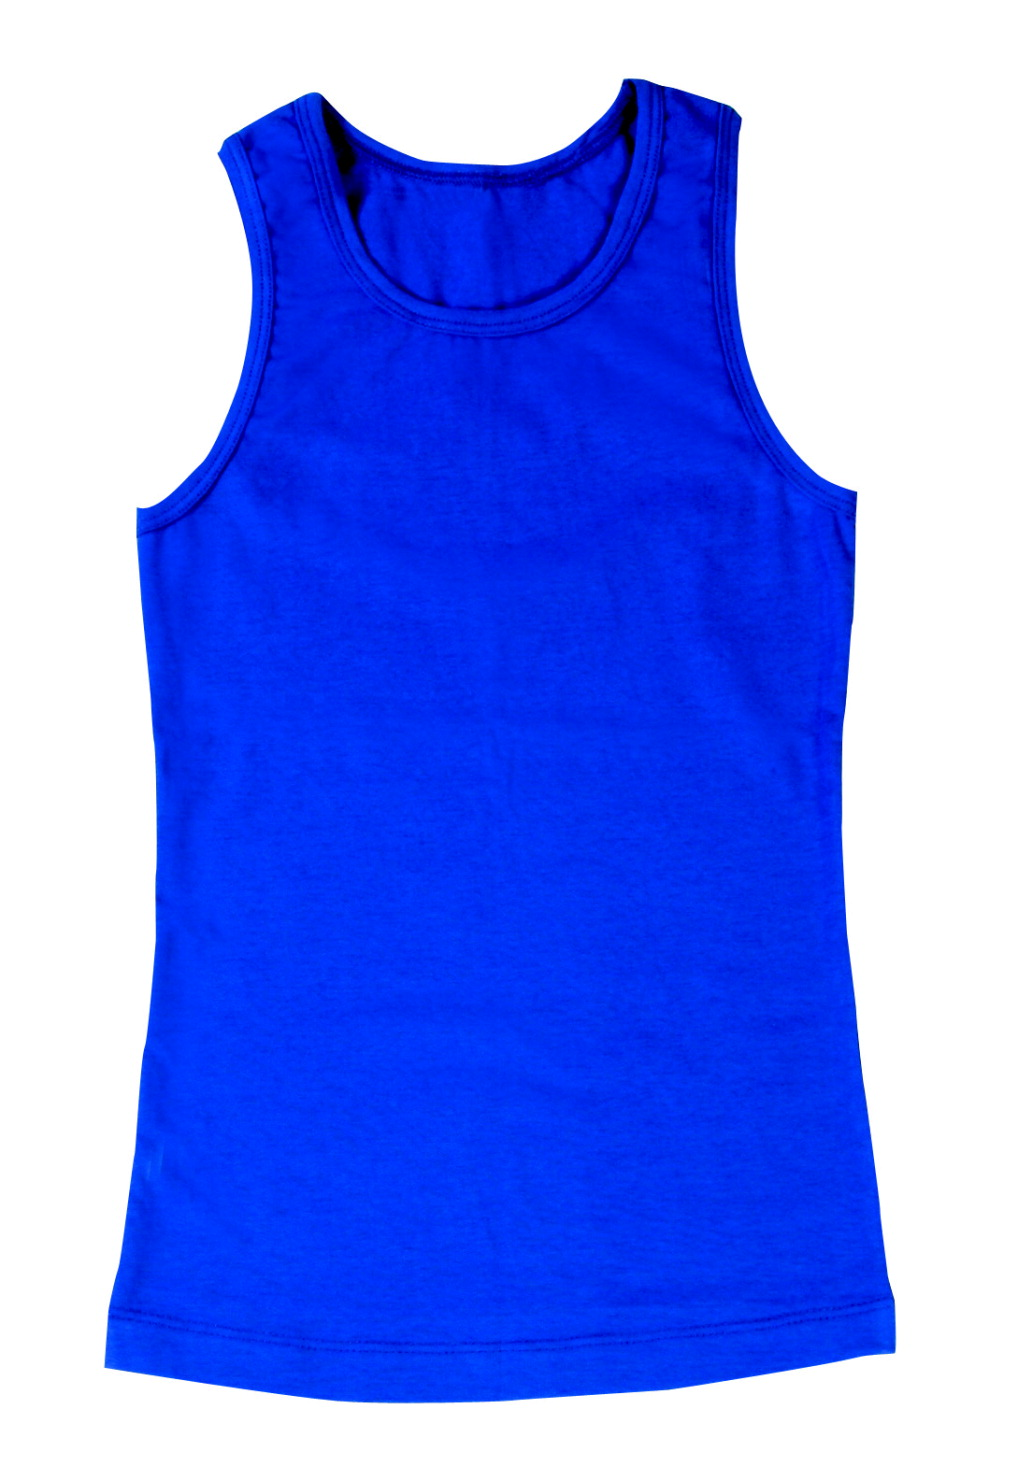 Abilitations HuggME Tank Top, X-Small, Blue